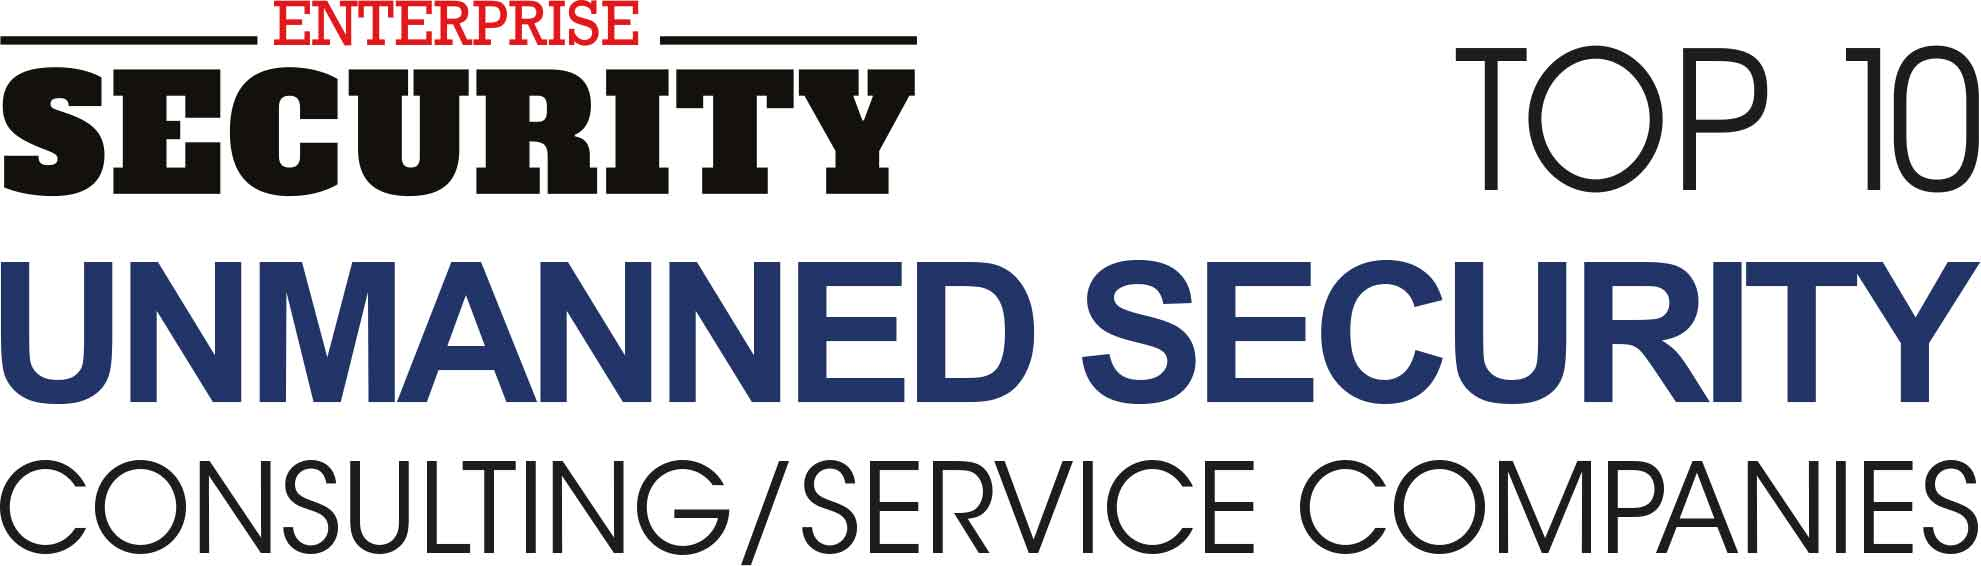 Top Unmanned Security Service/Consulting Companies